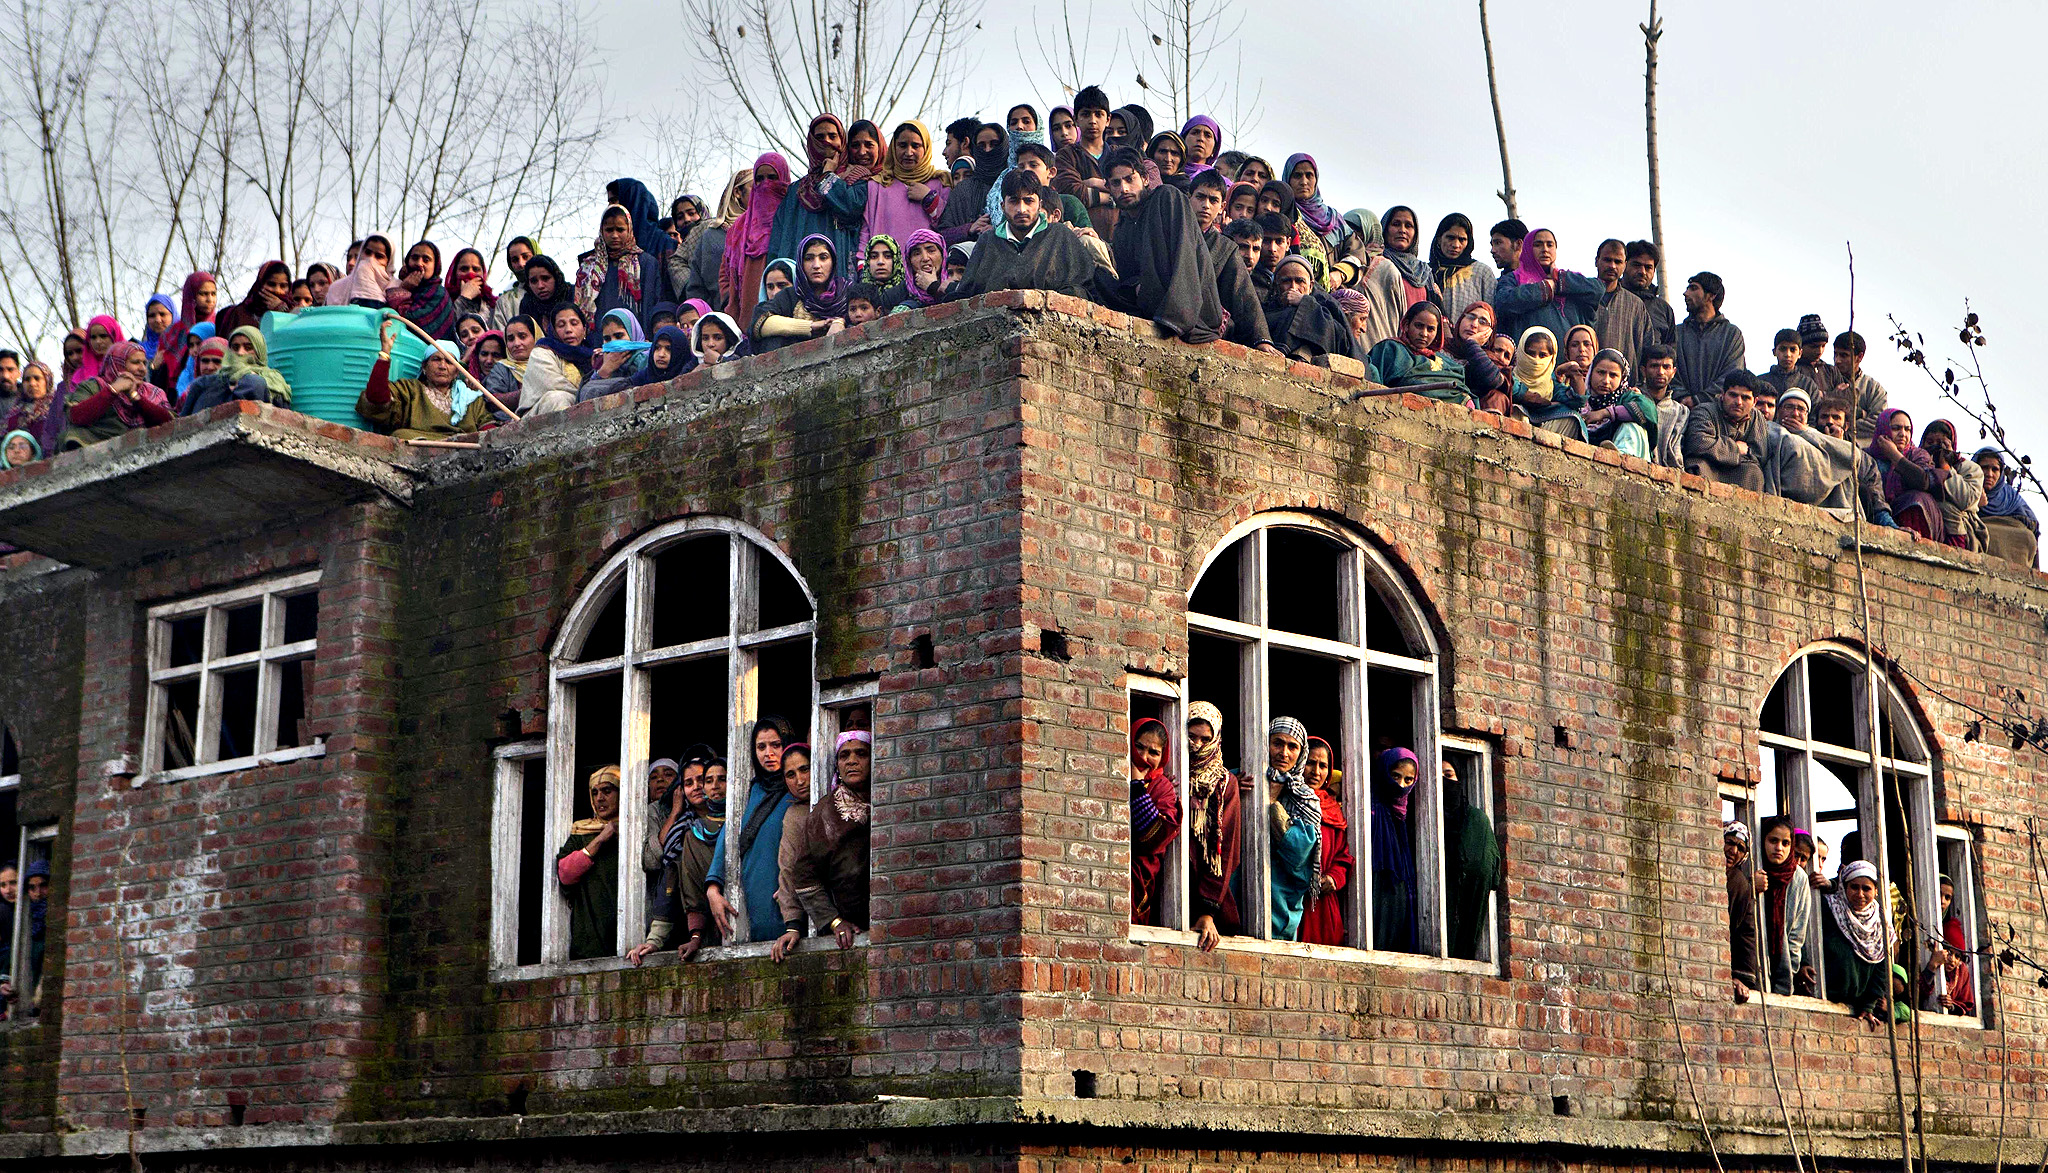 Kashmiri Muslims watch the funeral procession of Indian paramilitary soldier Muhammad Shafi Bhat in Buran, some 35 kilometers (22 miles) north of Srinagar, India, Wednesday, Dec. 3, 2014. Thousands took part in the funeral procession of Shafi who was killed in an attack by Maoist rebels in central India on Monday